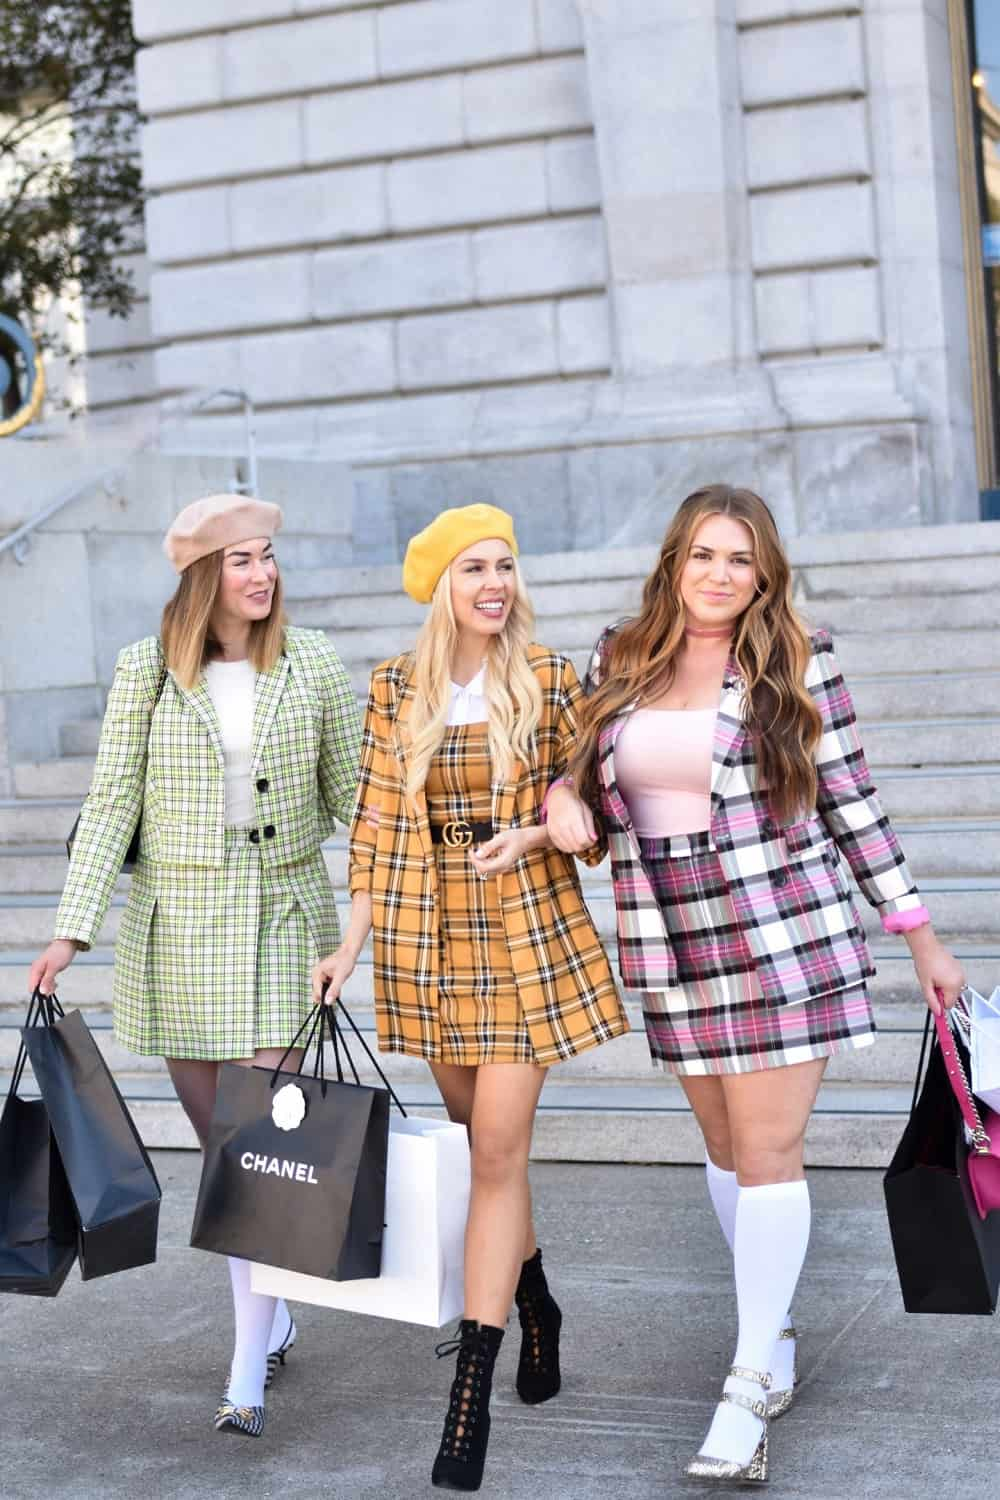 Check out this clueless Halloween costume look you can do with the girls.